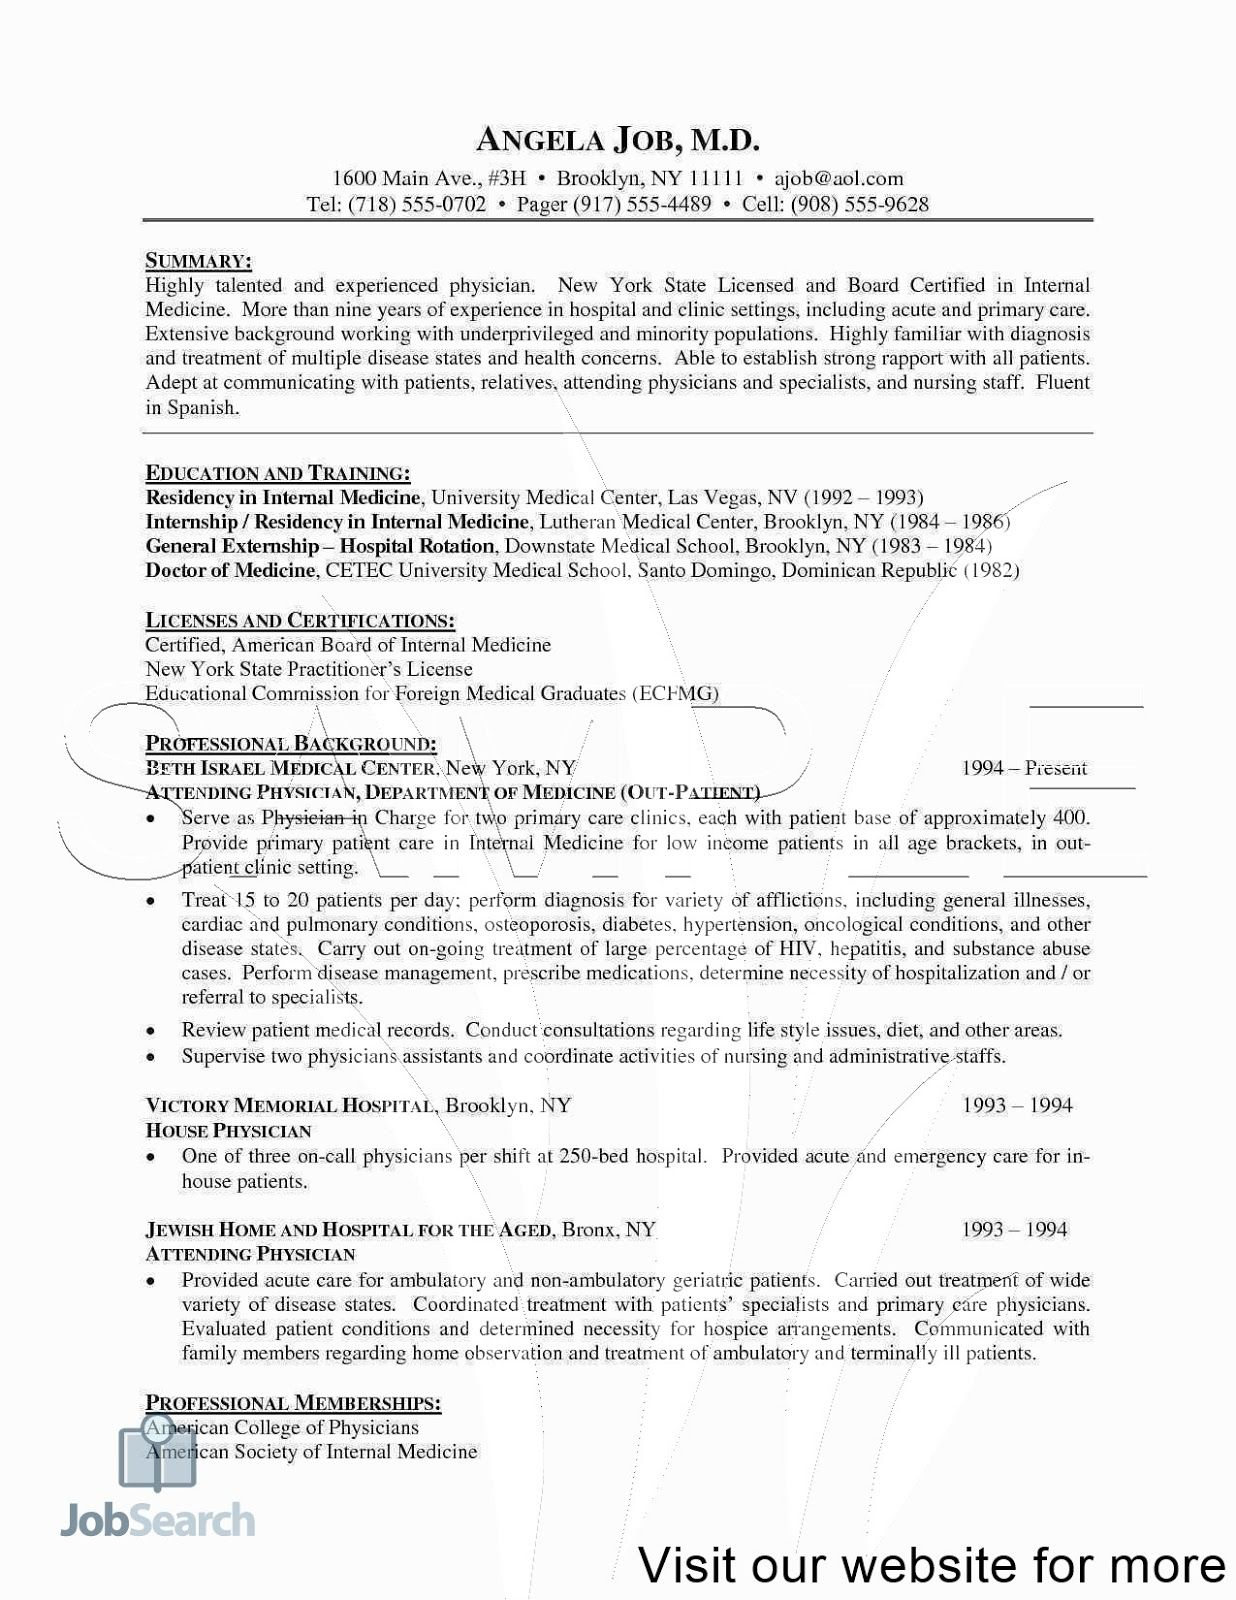 Resume Writing Tips Templates 2020 in 2020 Resume